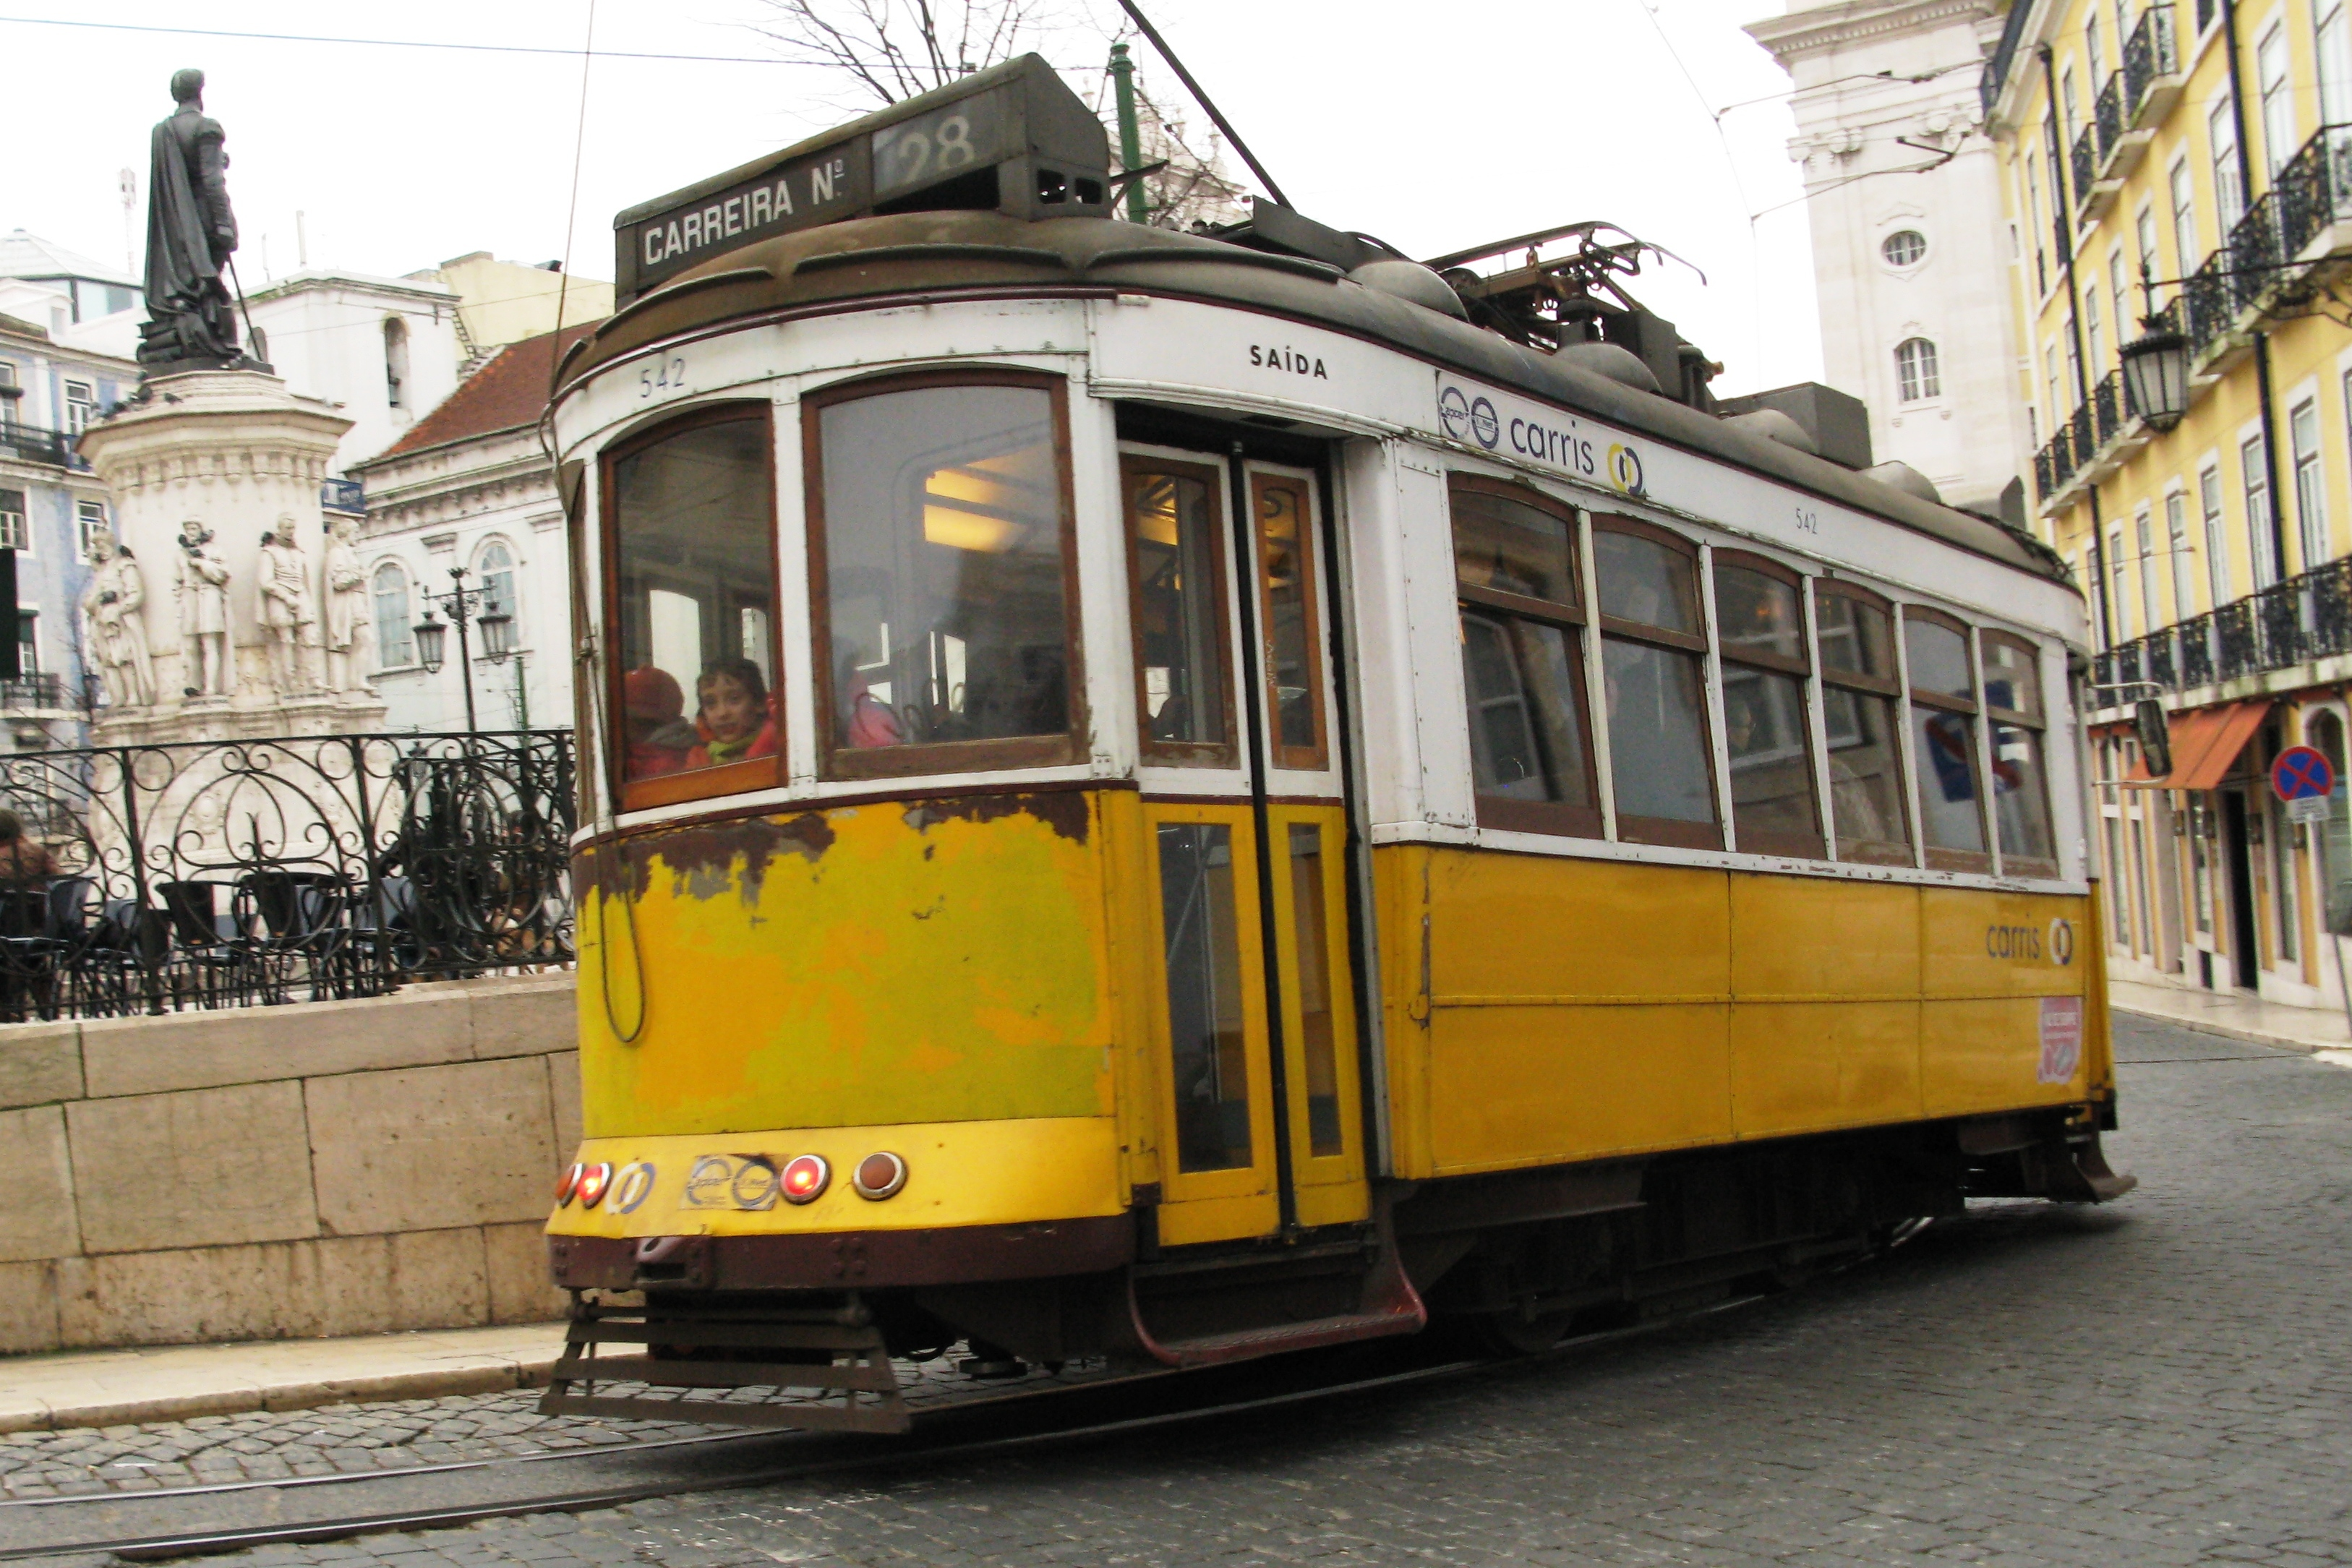 filetram lissabon aljpg wikimedia commons